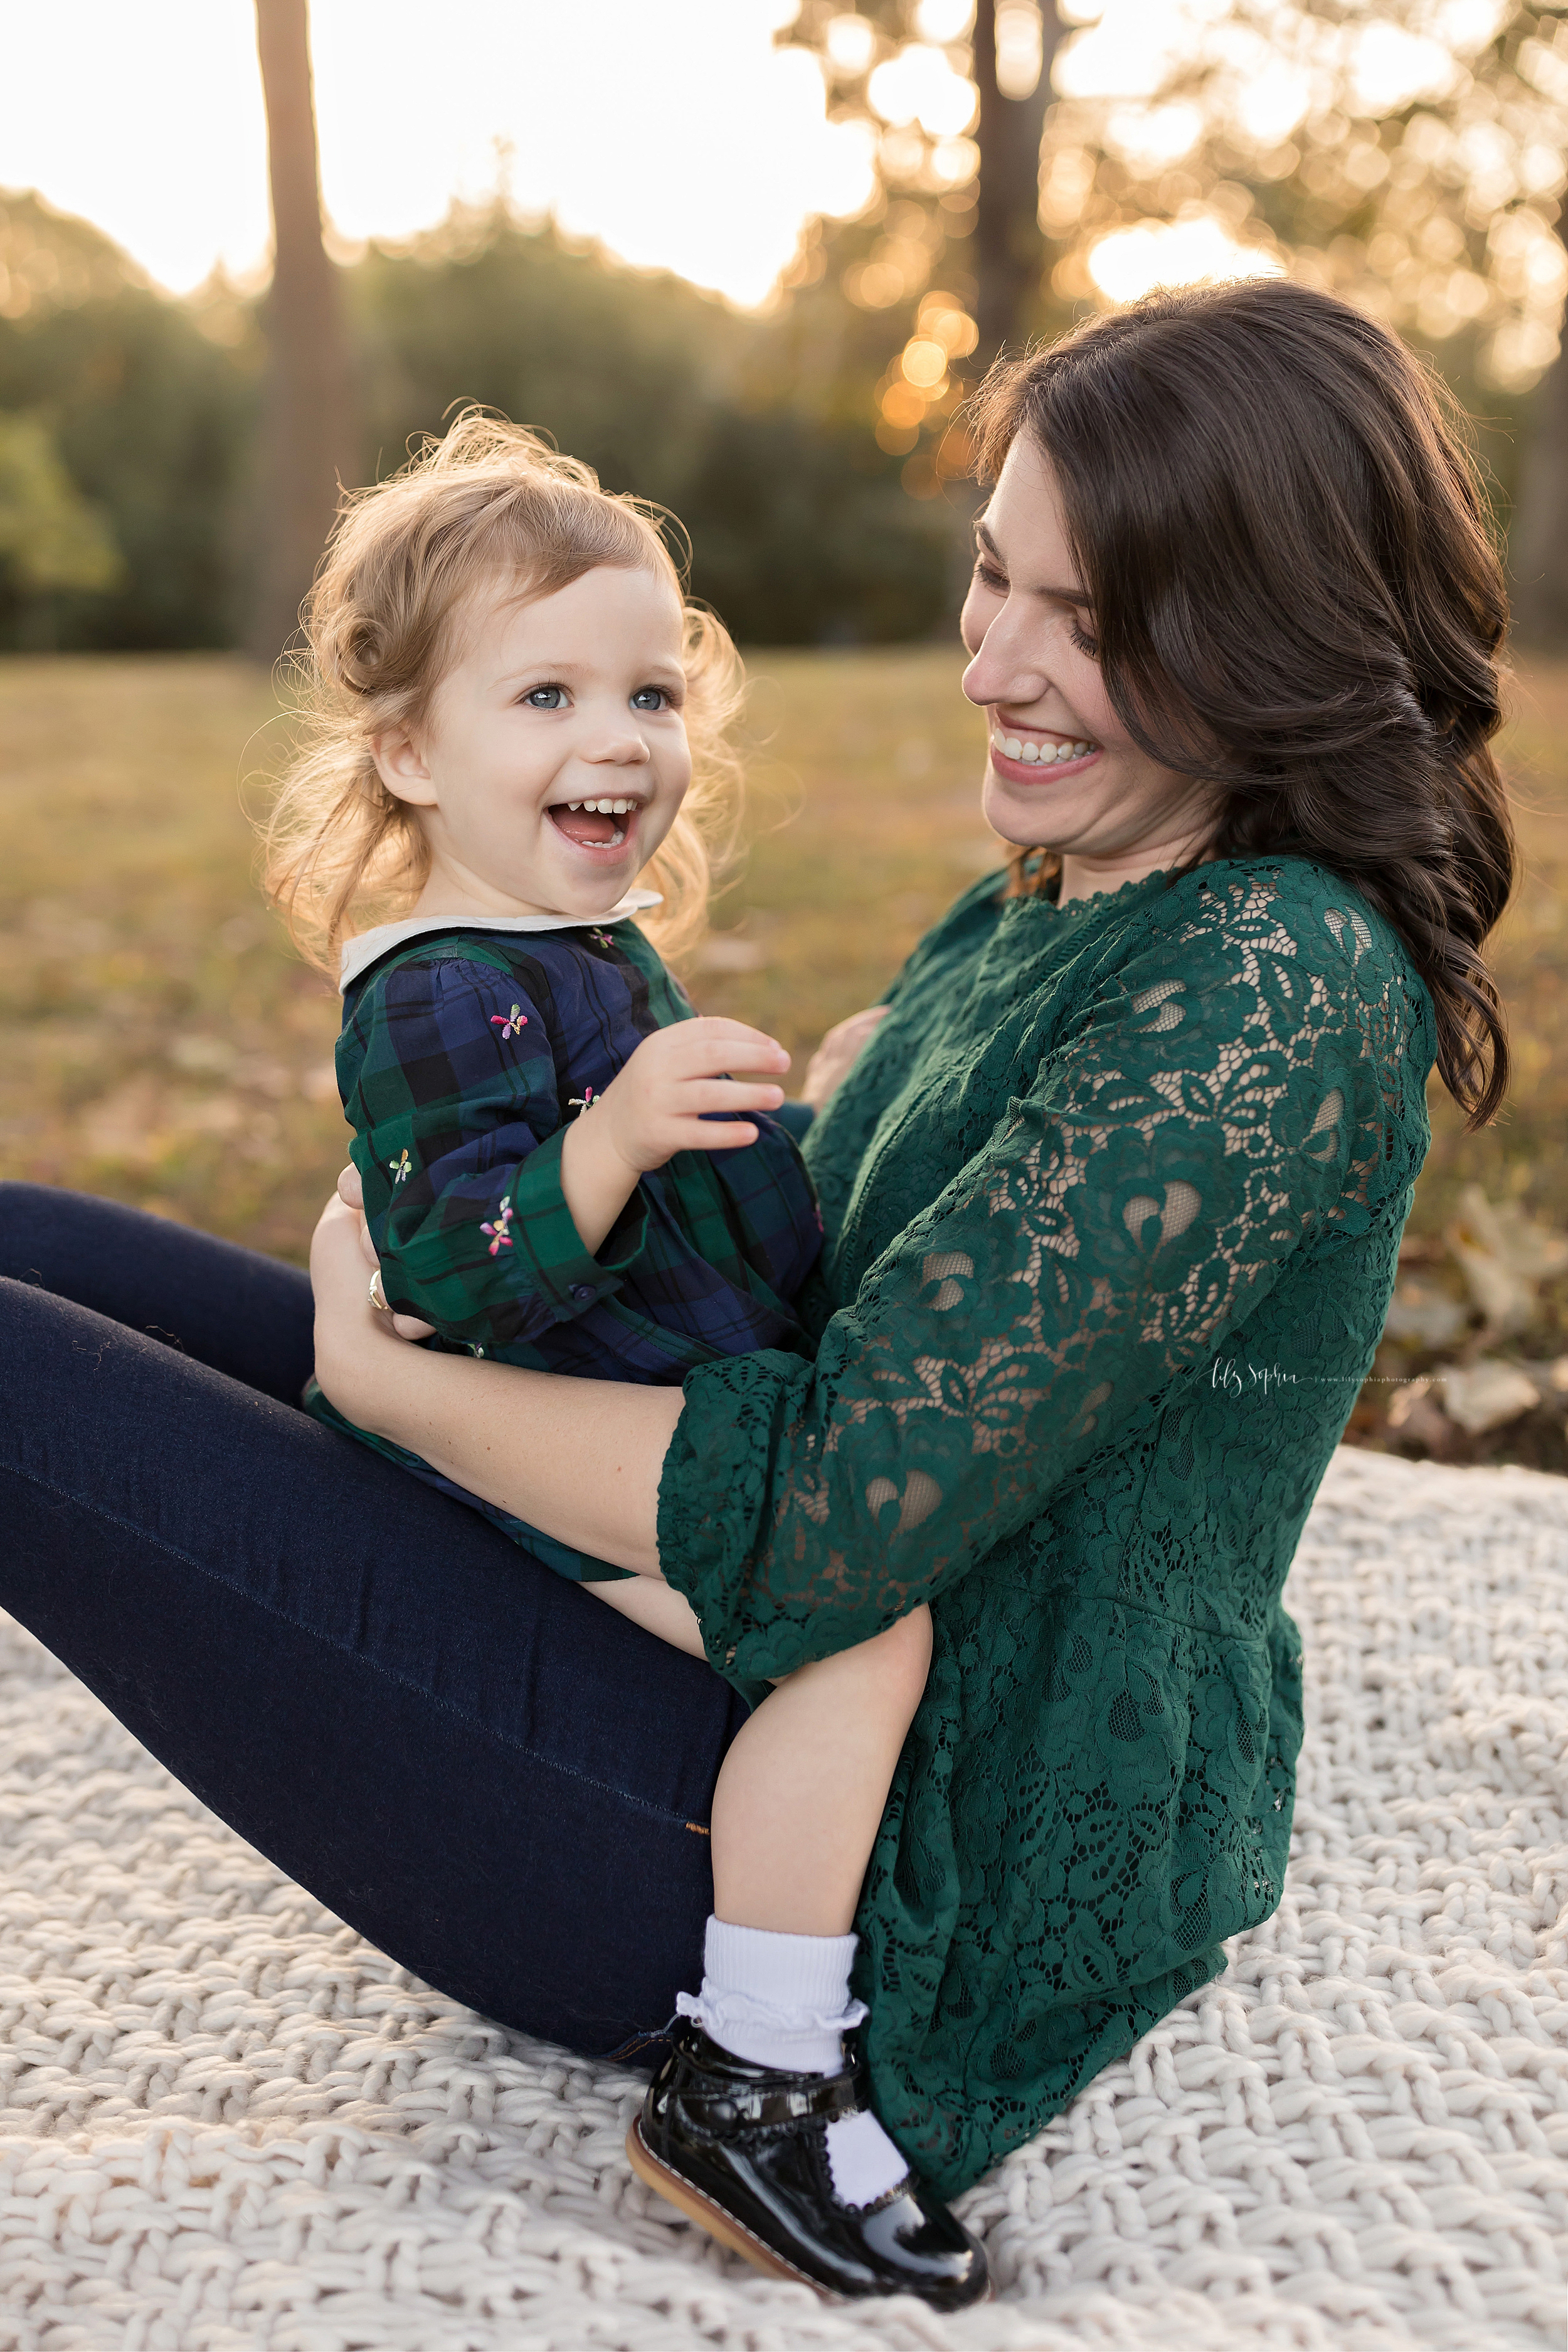 atlanta-buckhead-brookhaven-decatur-lily-sophia-photography-photographer-portraits-grant-park-intown-outdoor-family-sunset-session-toddler-baby-girl_0011.jpg